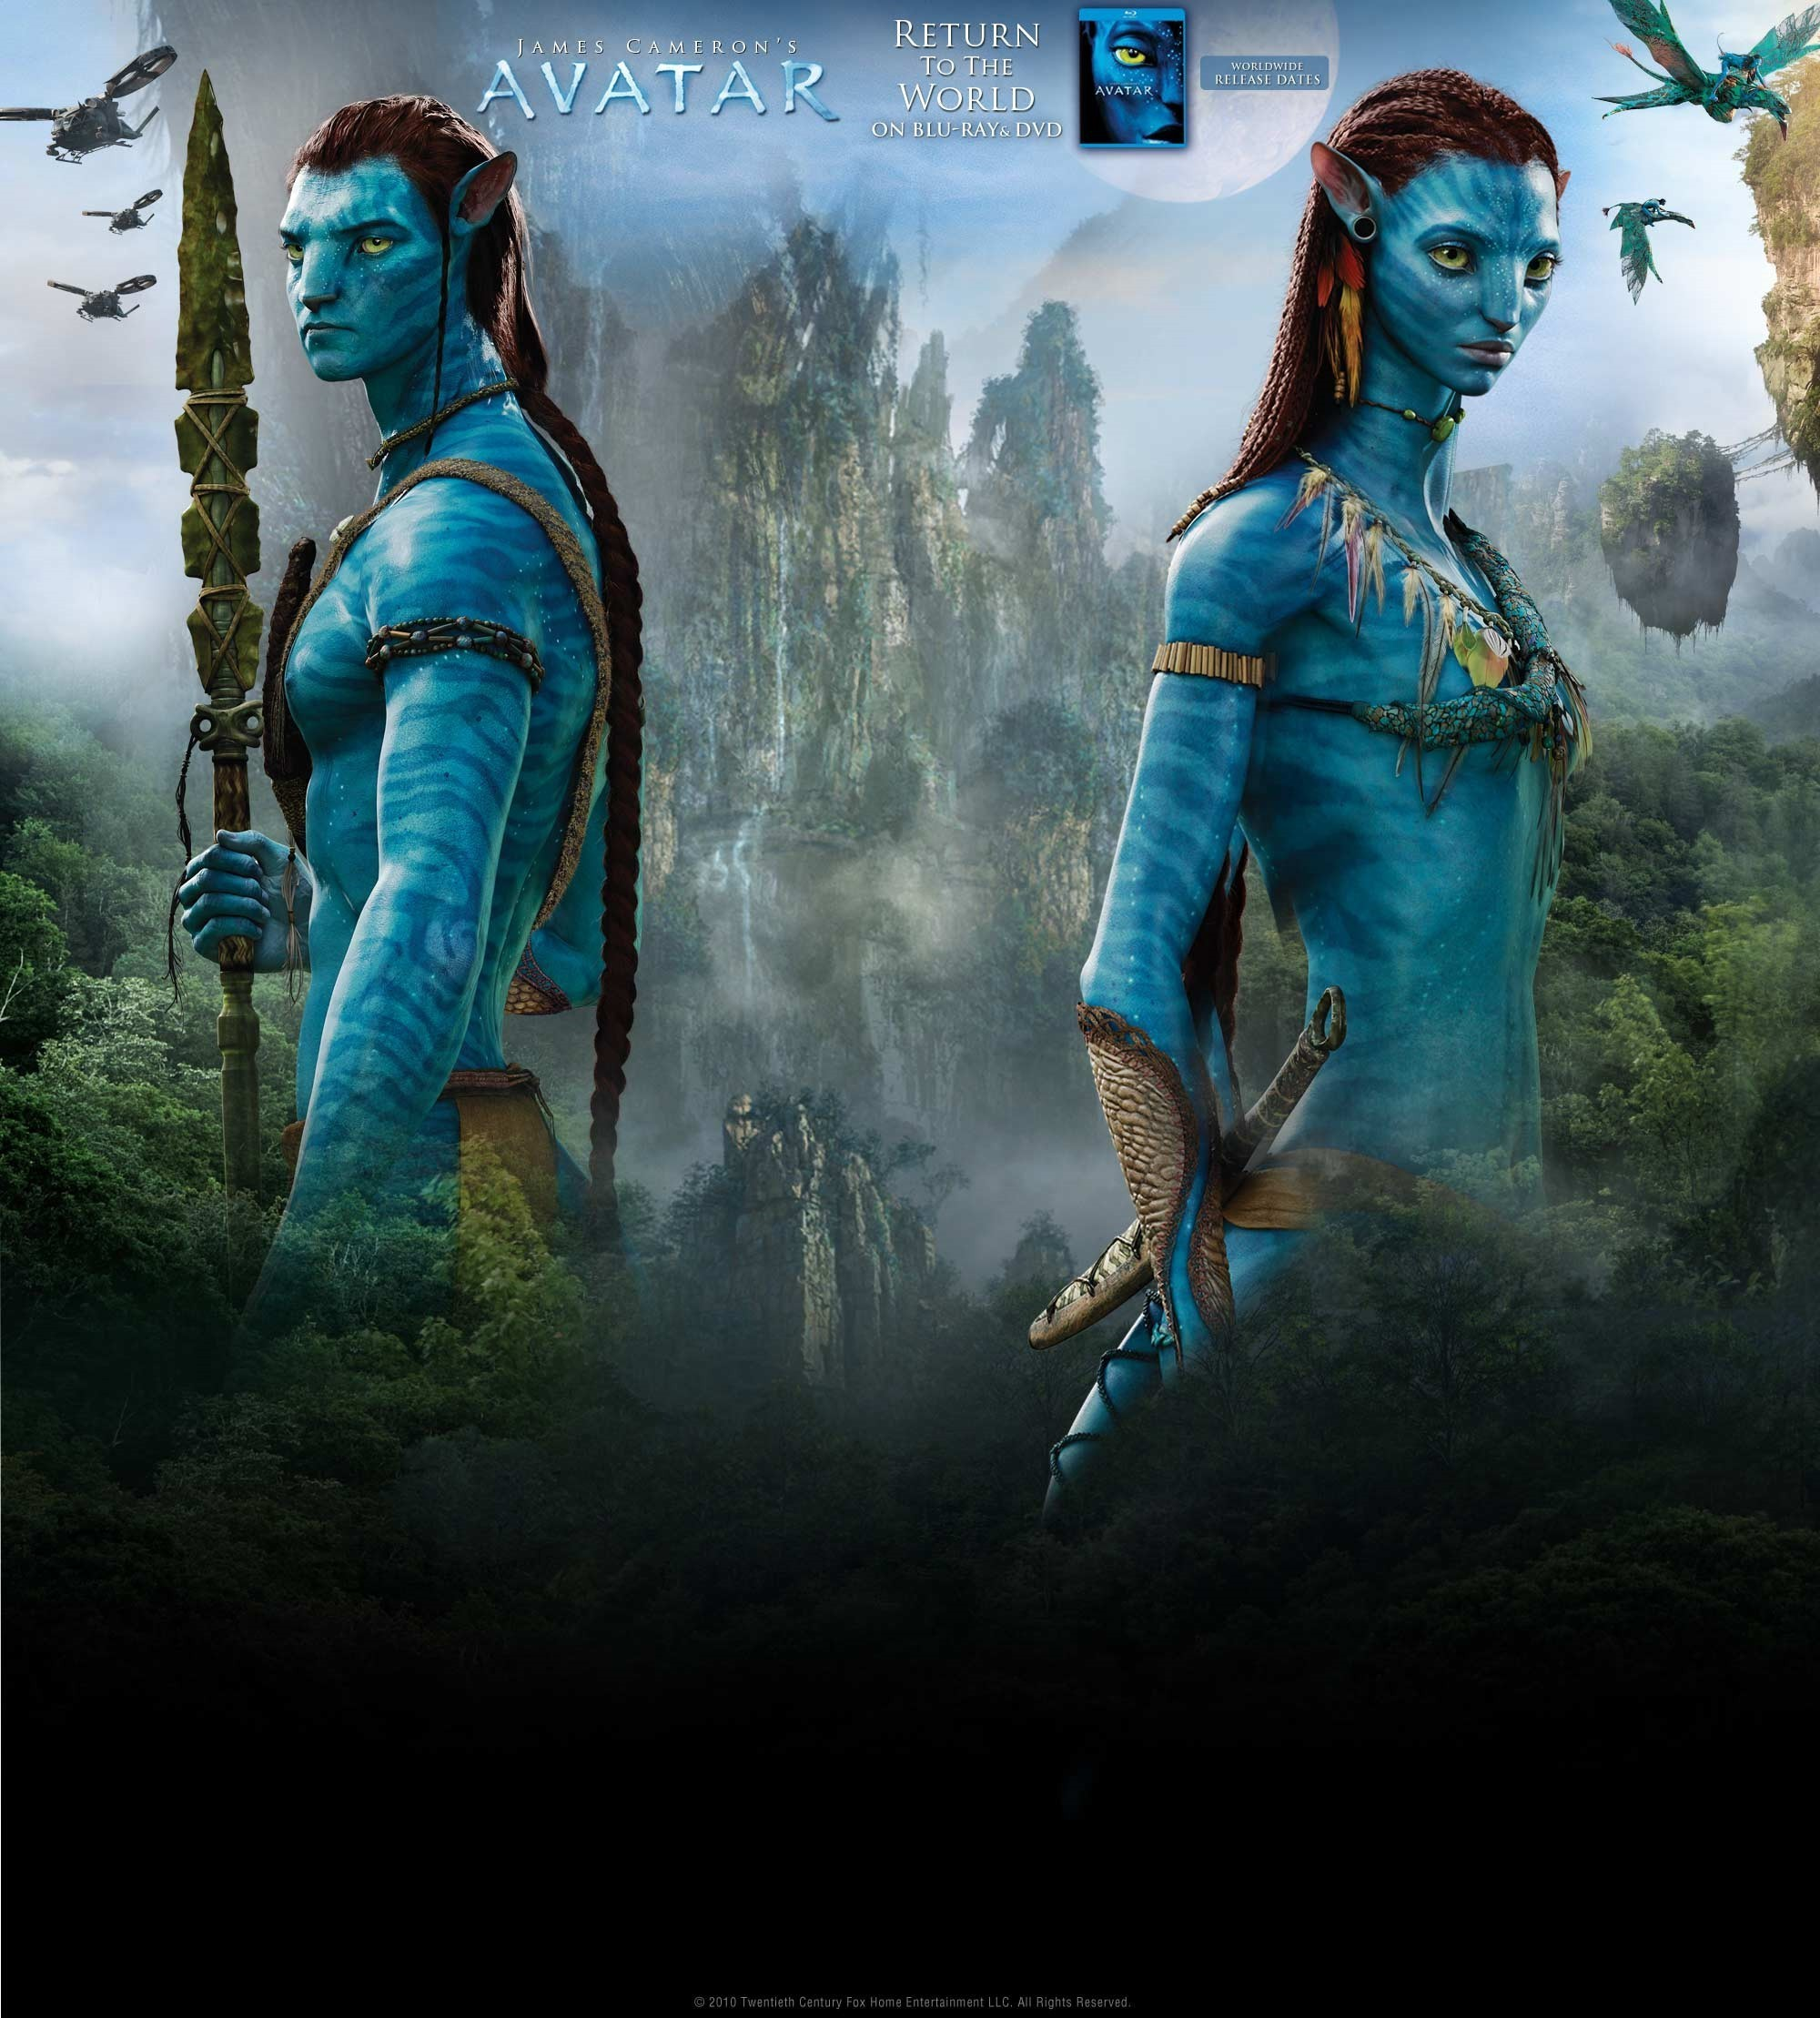 Avatar Sequel: Avatar Blu-Ray & Dvd Promo